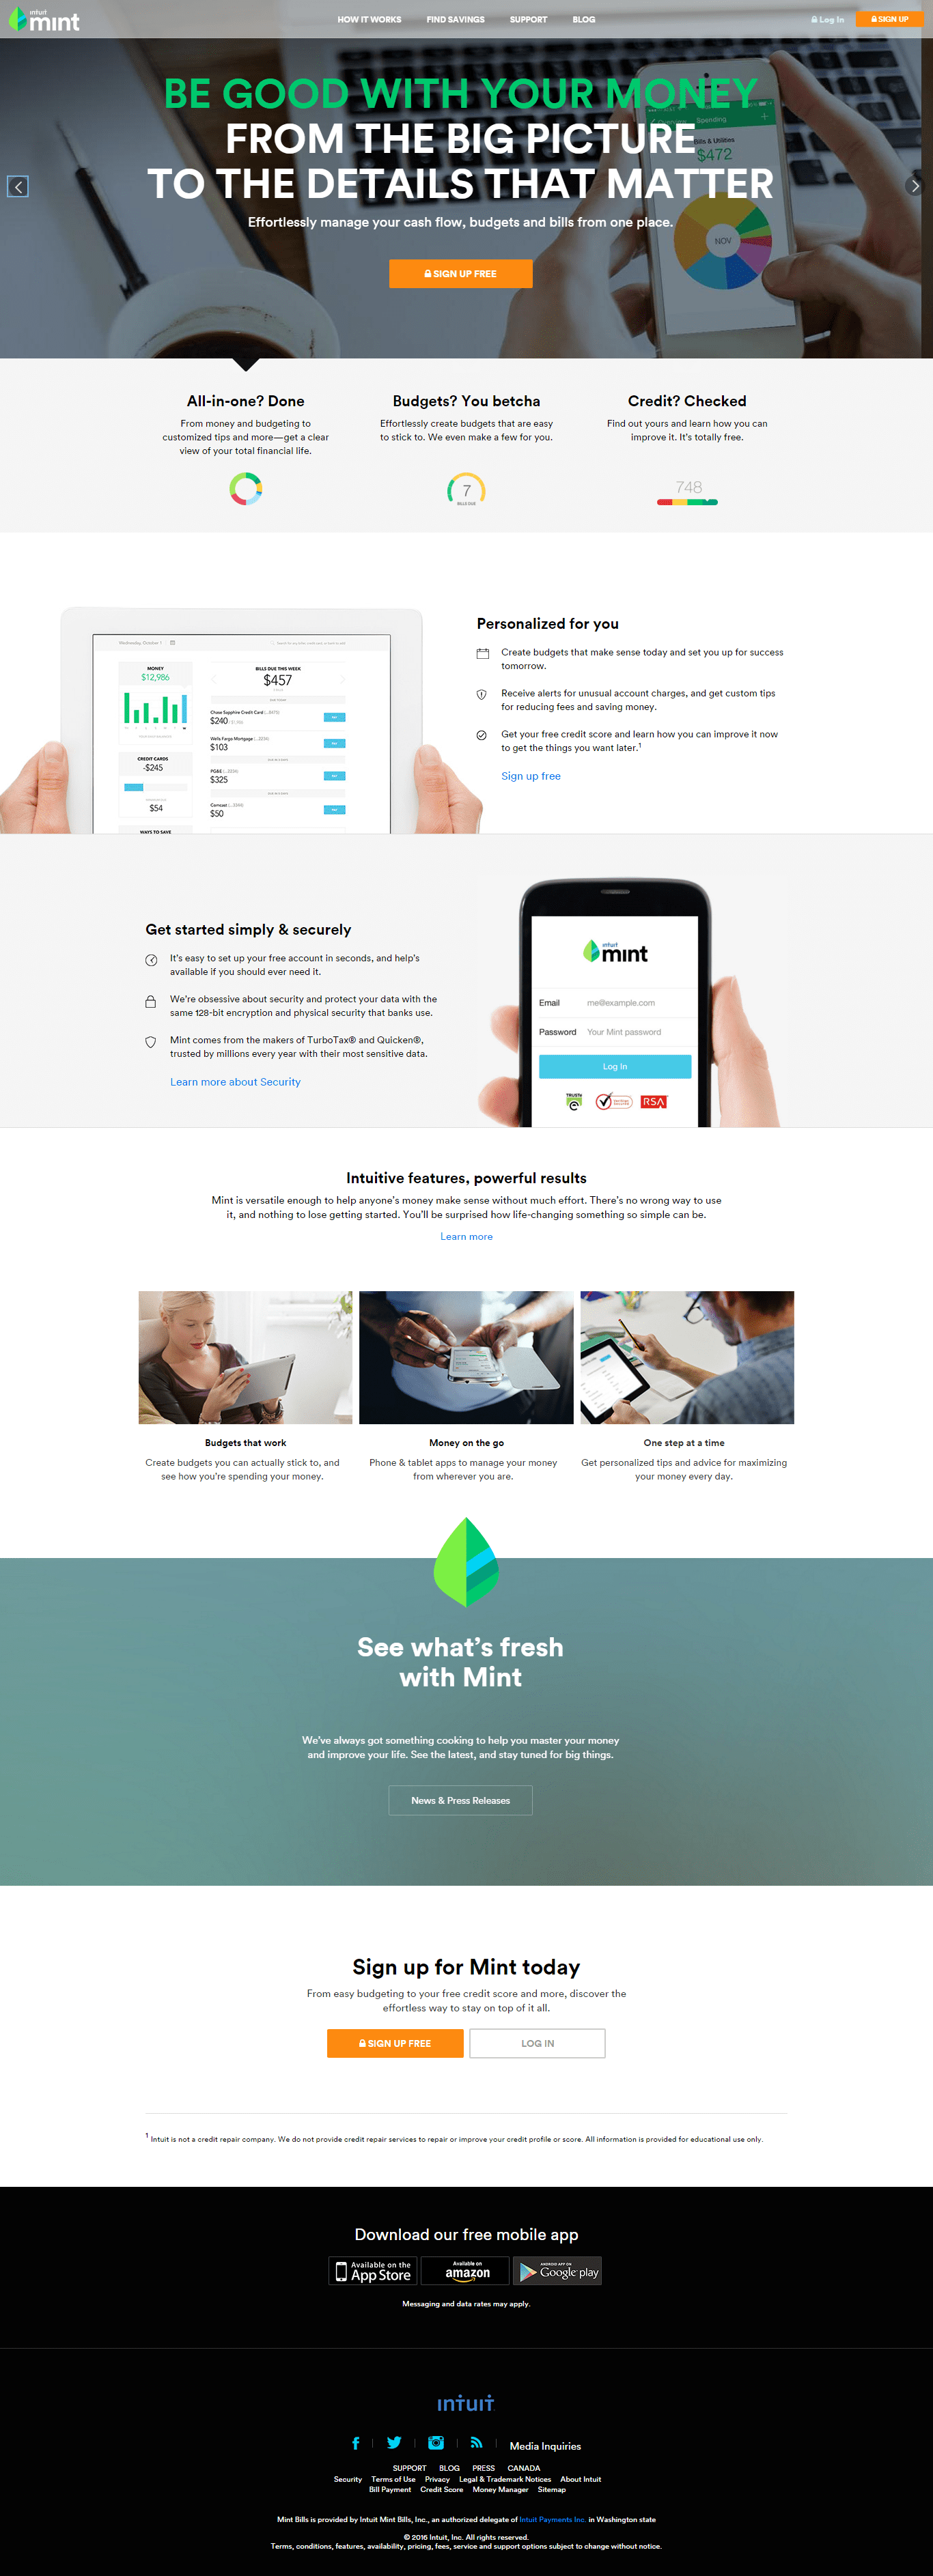 Mint.com-After-Eye-Tracking-Analysis